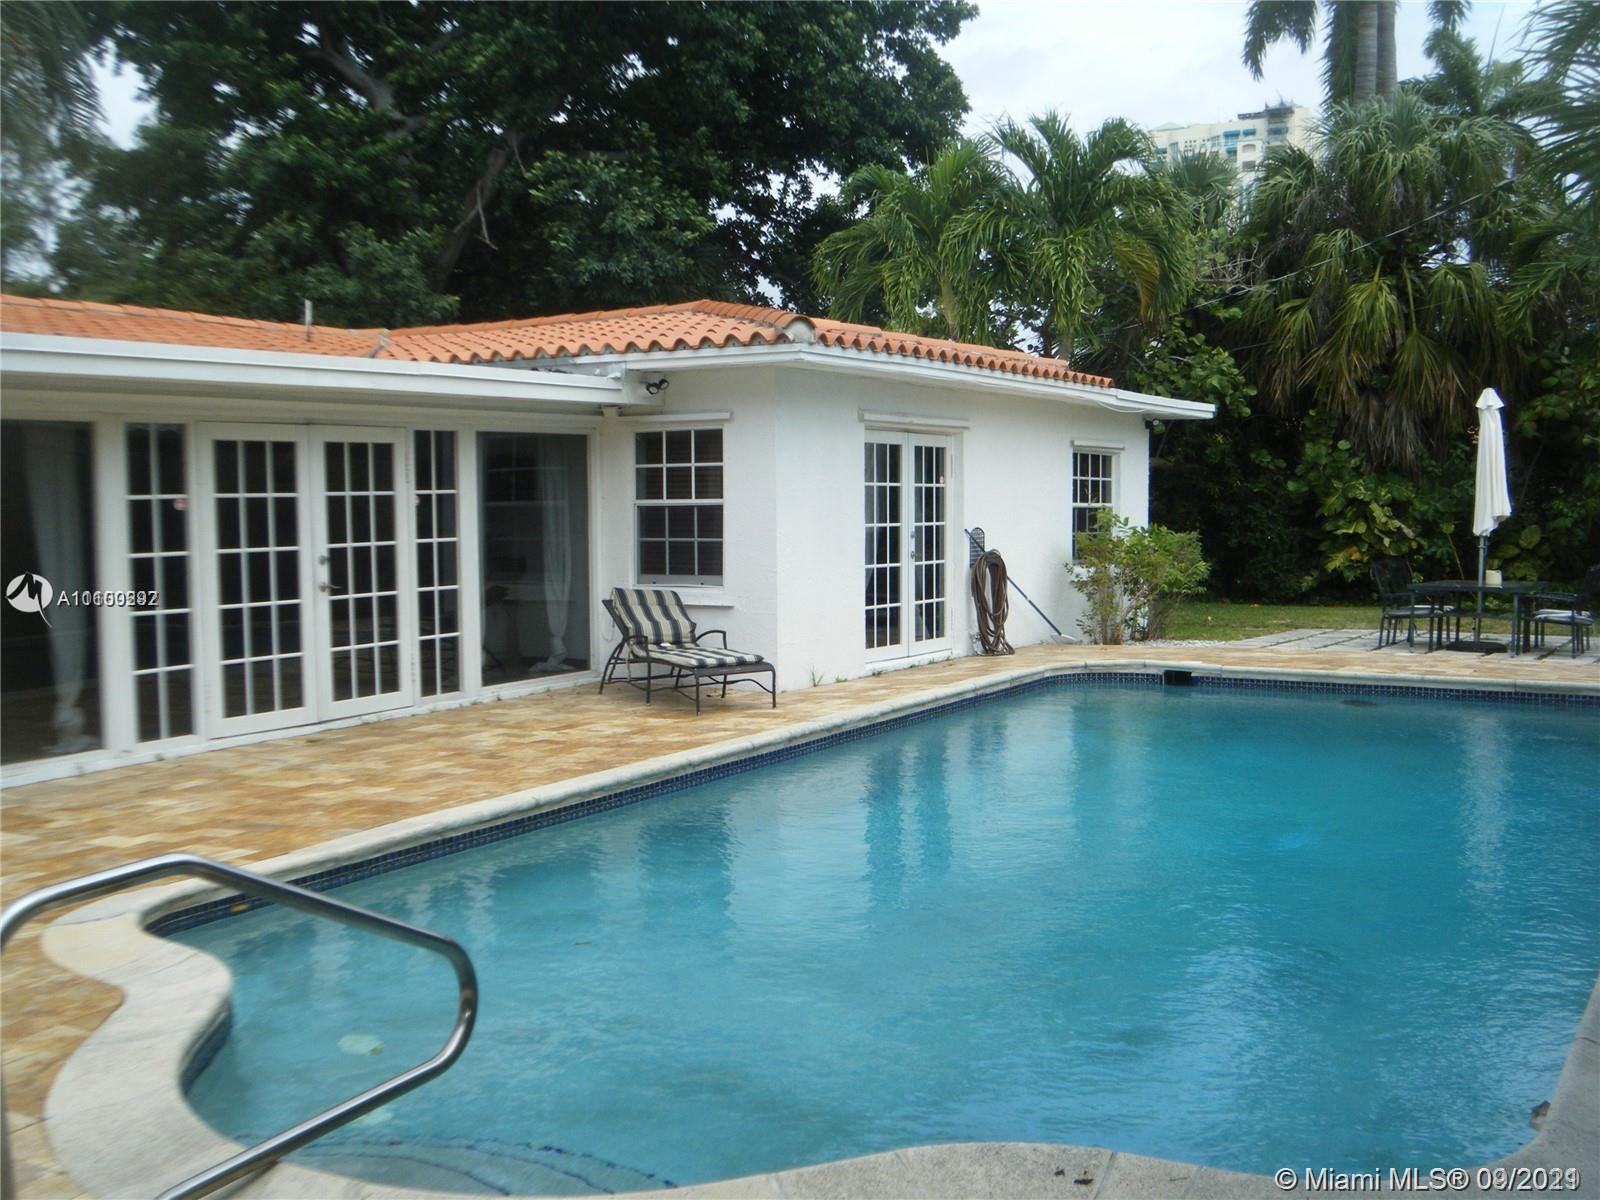 Updated 4 bedroom,4 bath (2 master suites) and double split plan ,swimming pool, 2 car garage in one